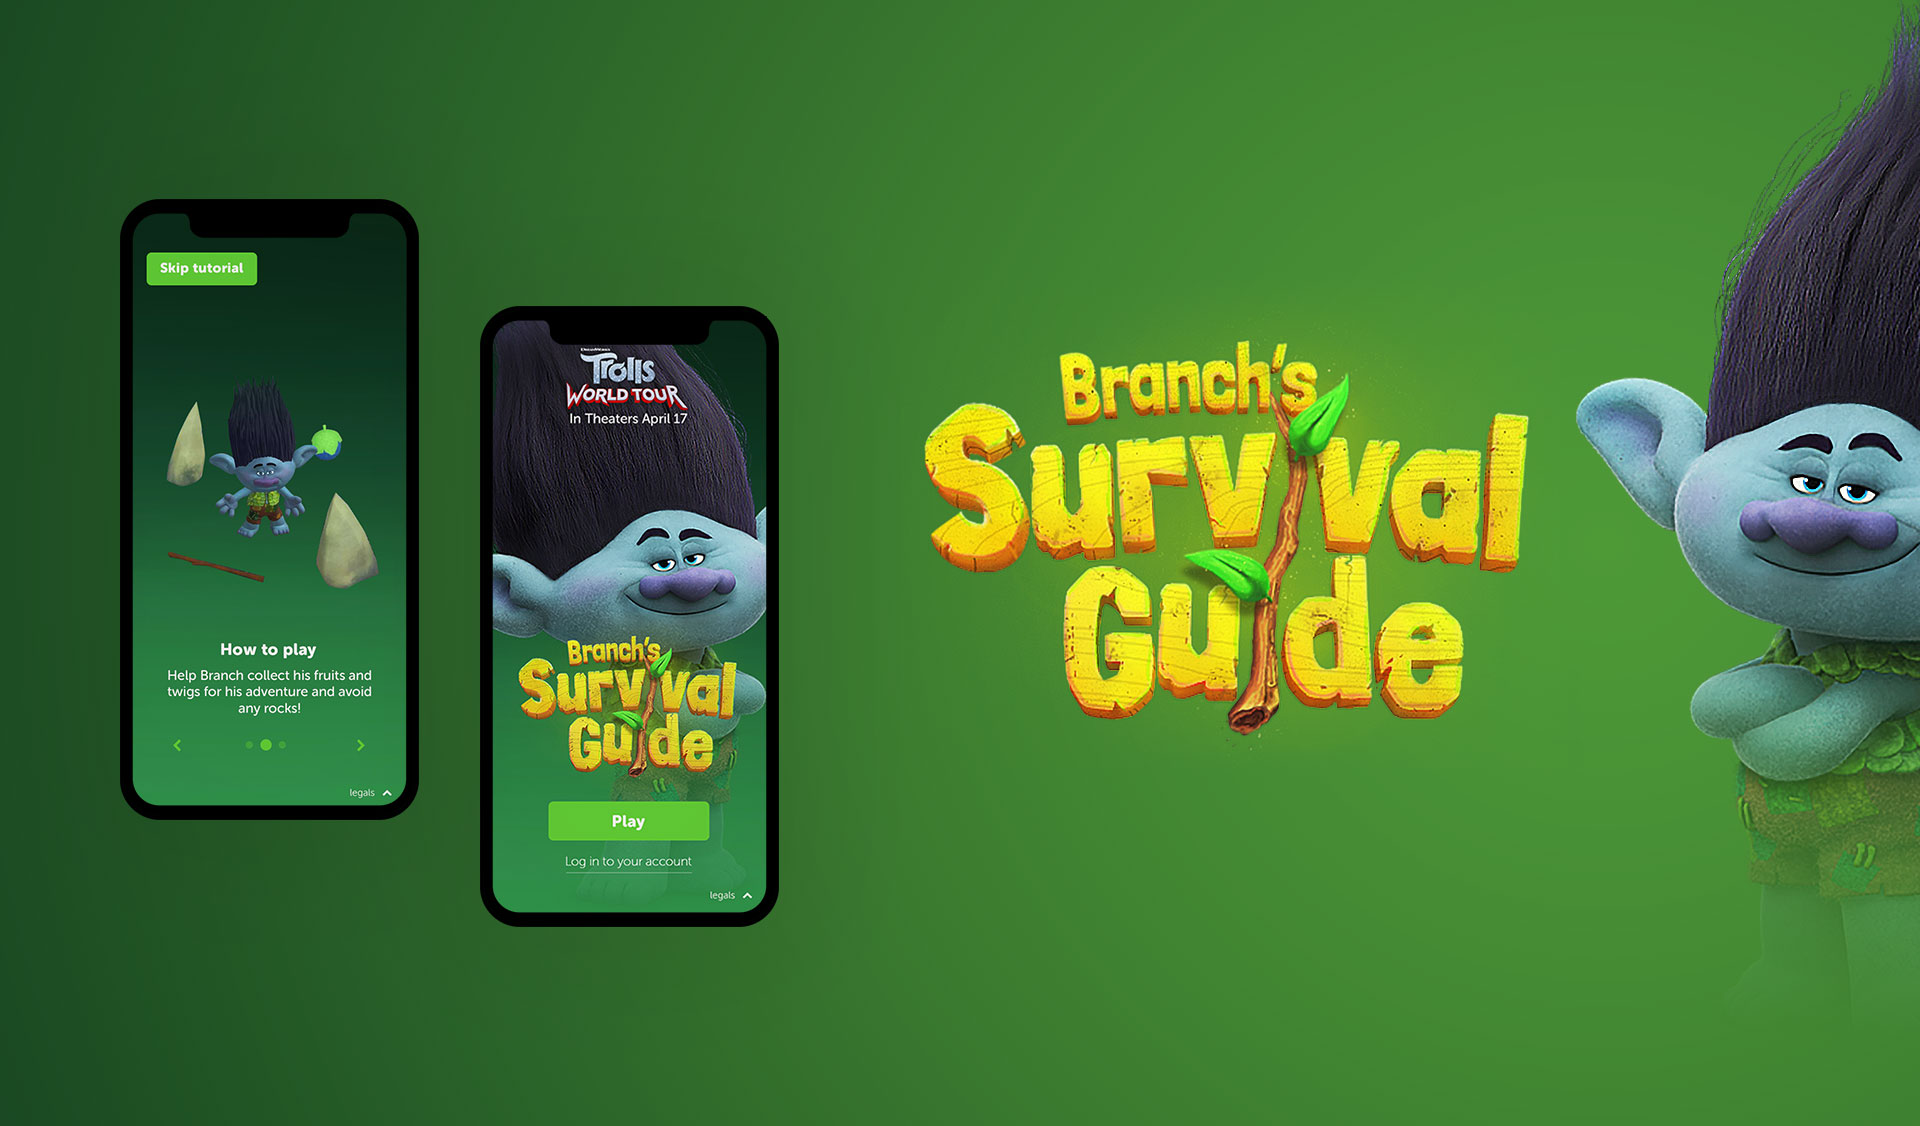 Branch title design and branding